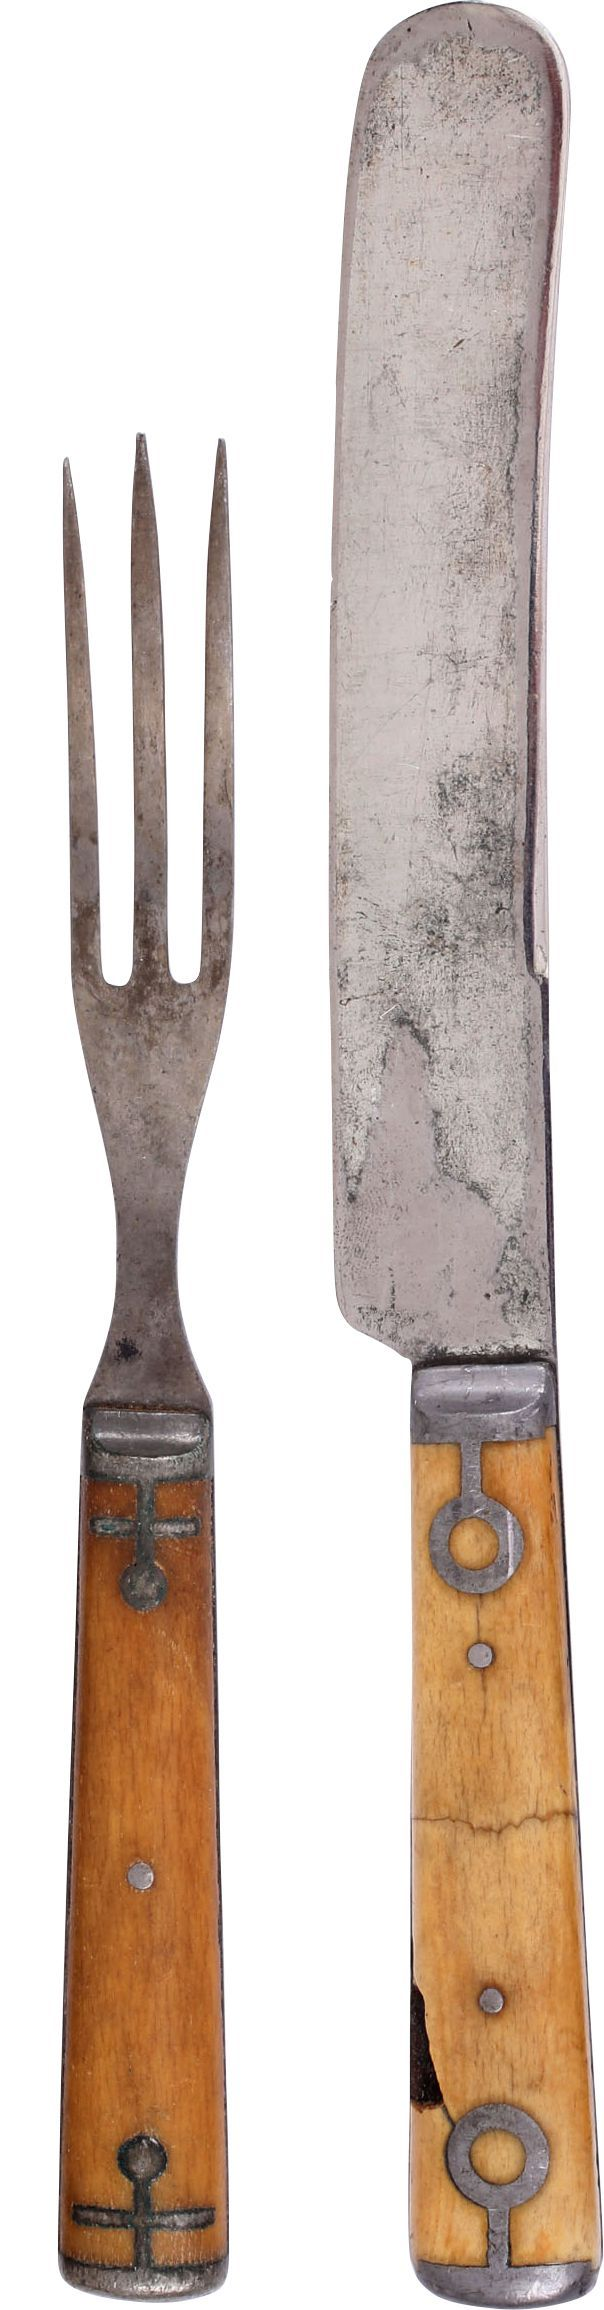 Civil War Cutlery - Product